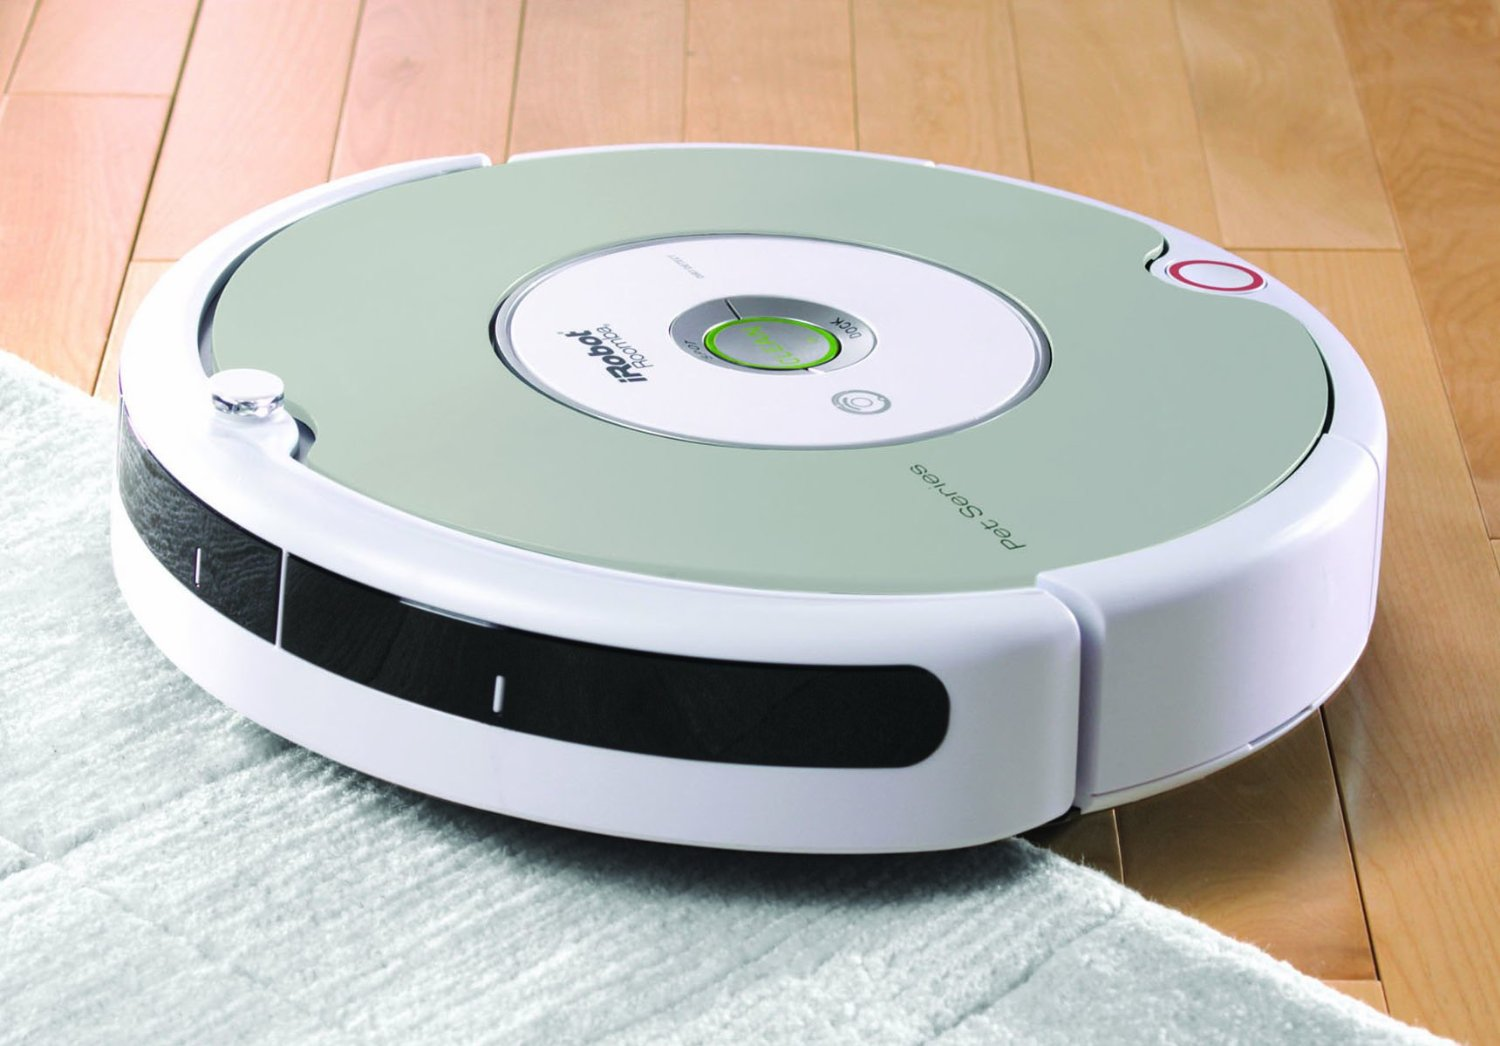 iRobot's Roomba robot vacuums may have arms in the future 2